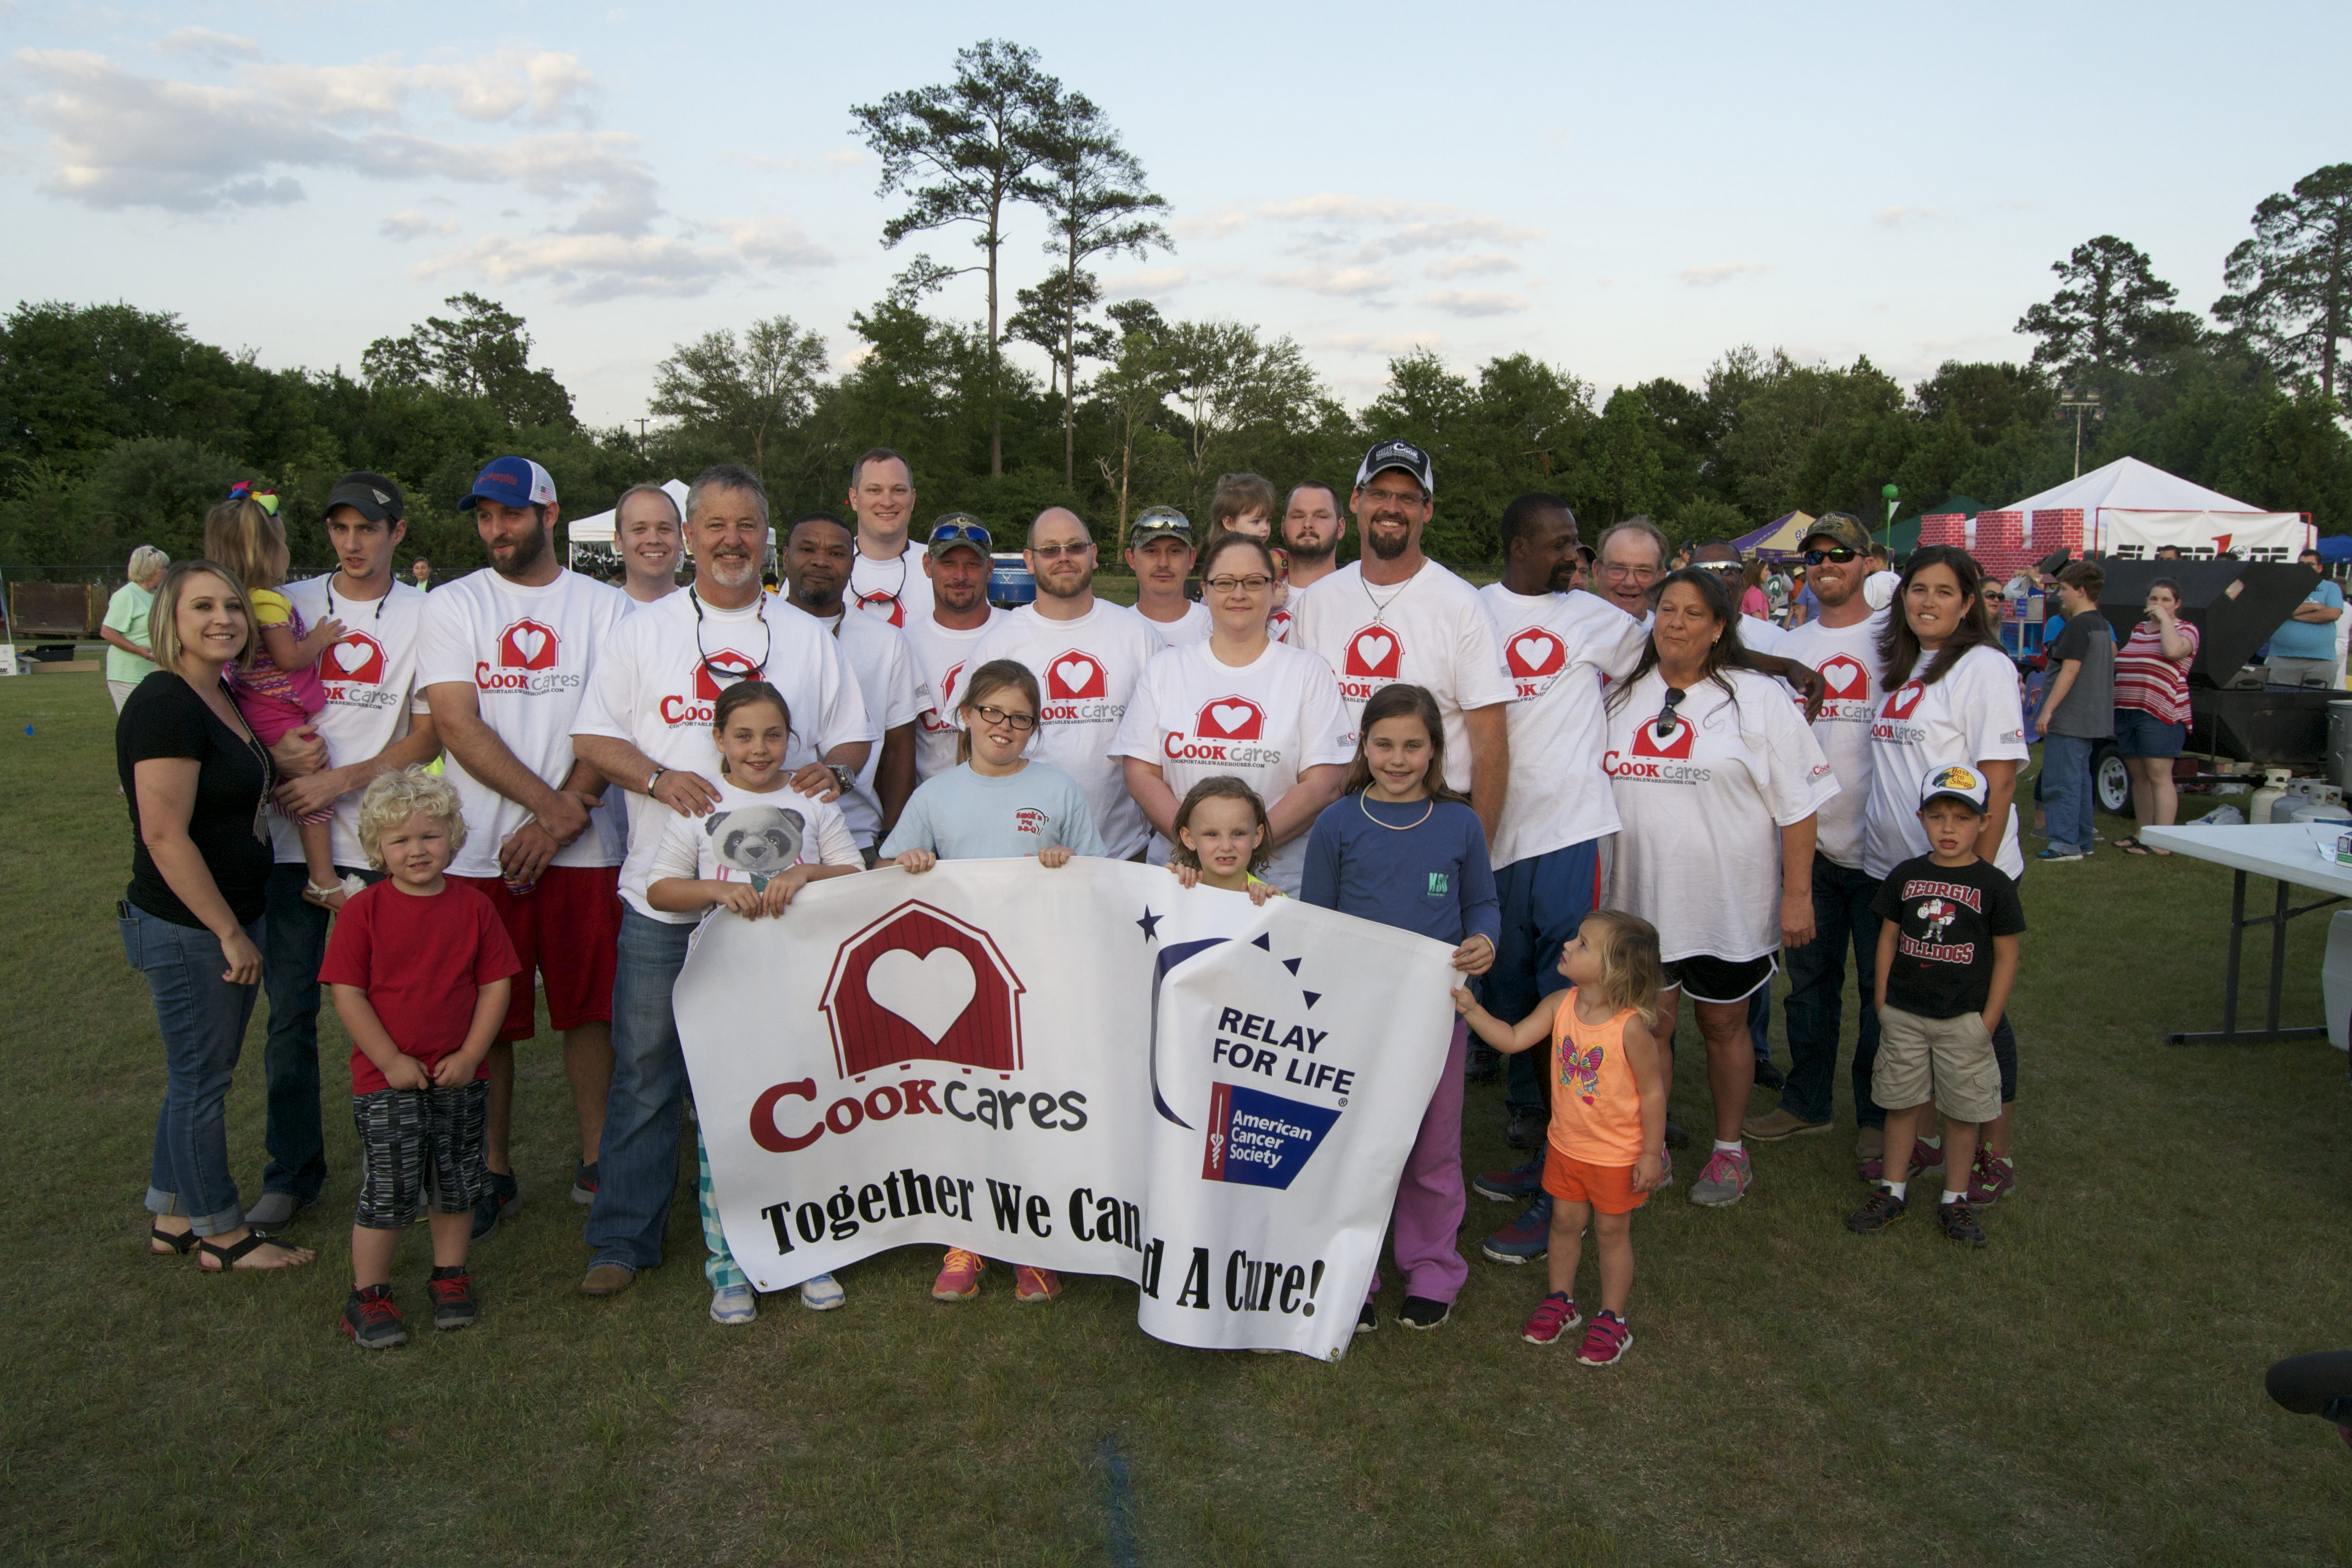 Cook Cares team for Relay for Life in 2016